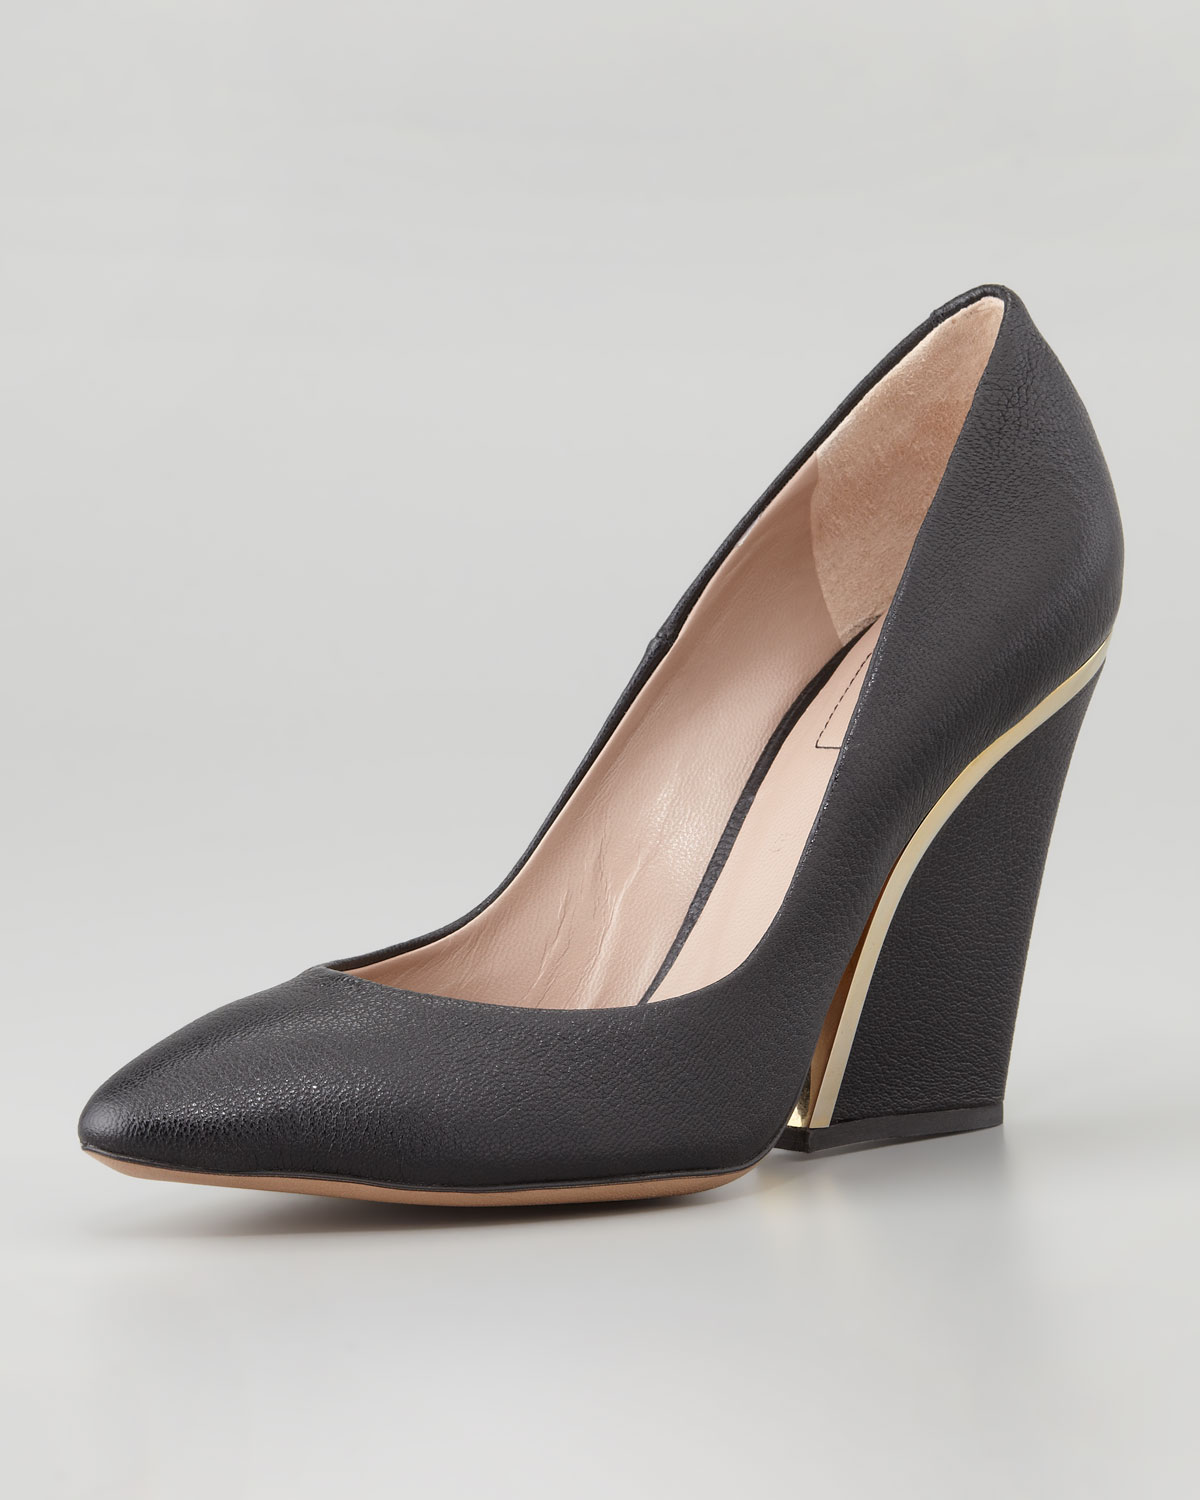 Lyst - Chloé Goldenheeled Leather Wedge Pump Black in Black